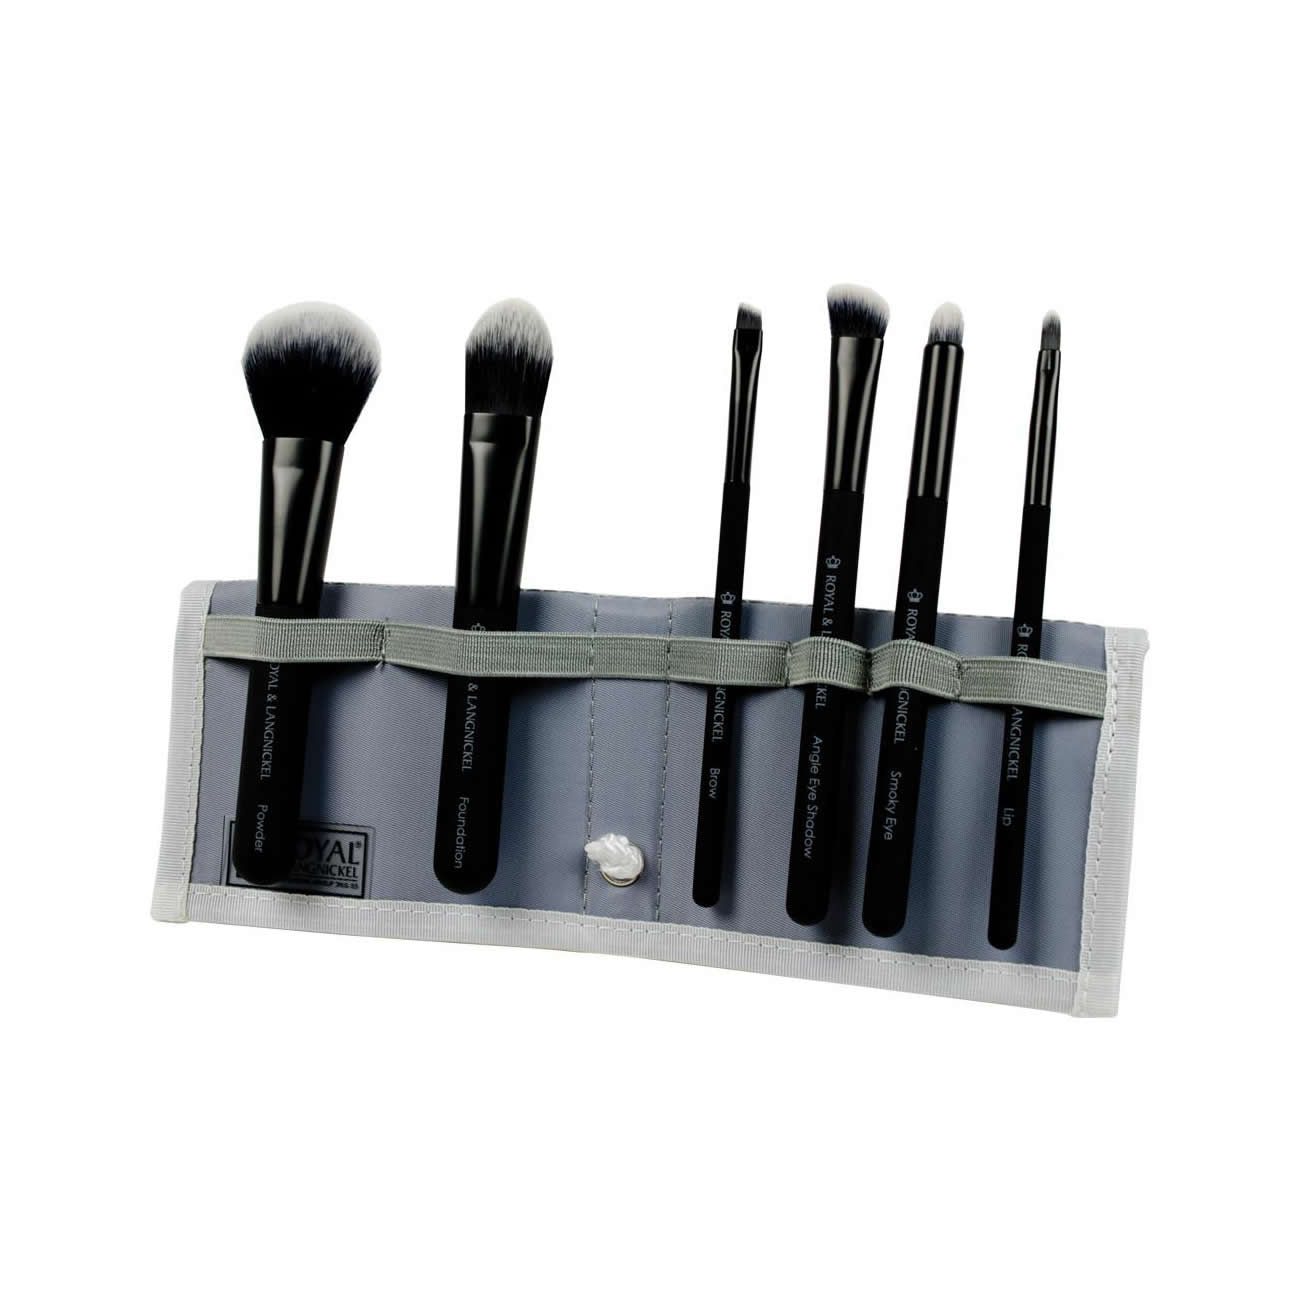 Royal & Langnickel MODA Total Face Flip Brush Kit (7pc) - Red Carpet FX - Professional Makeup